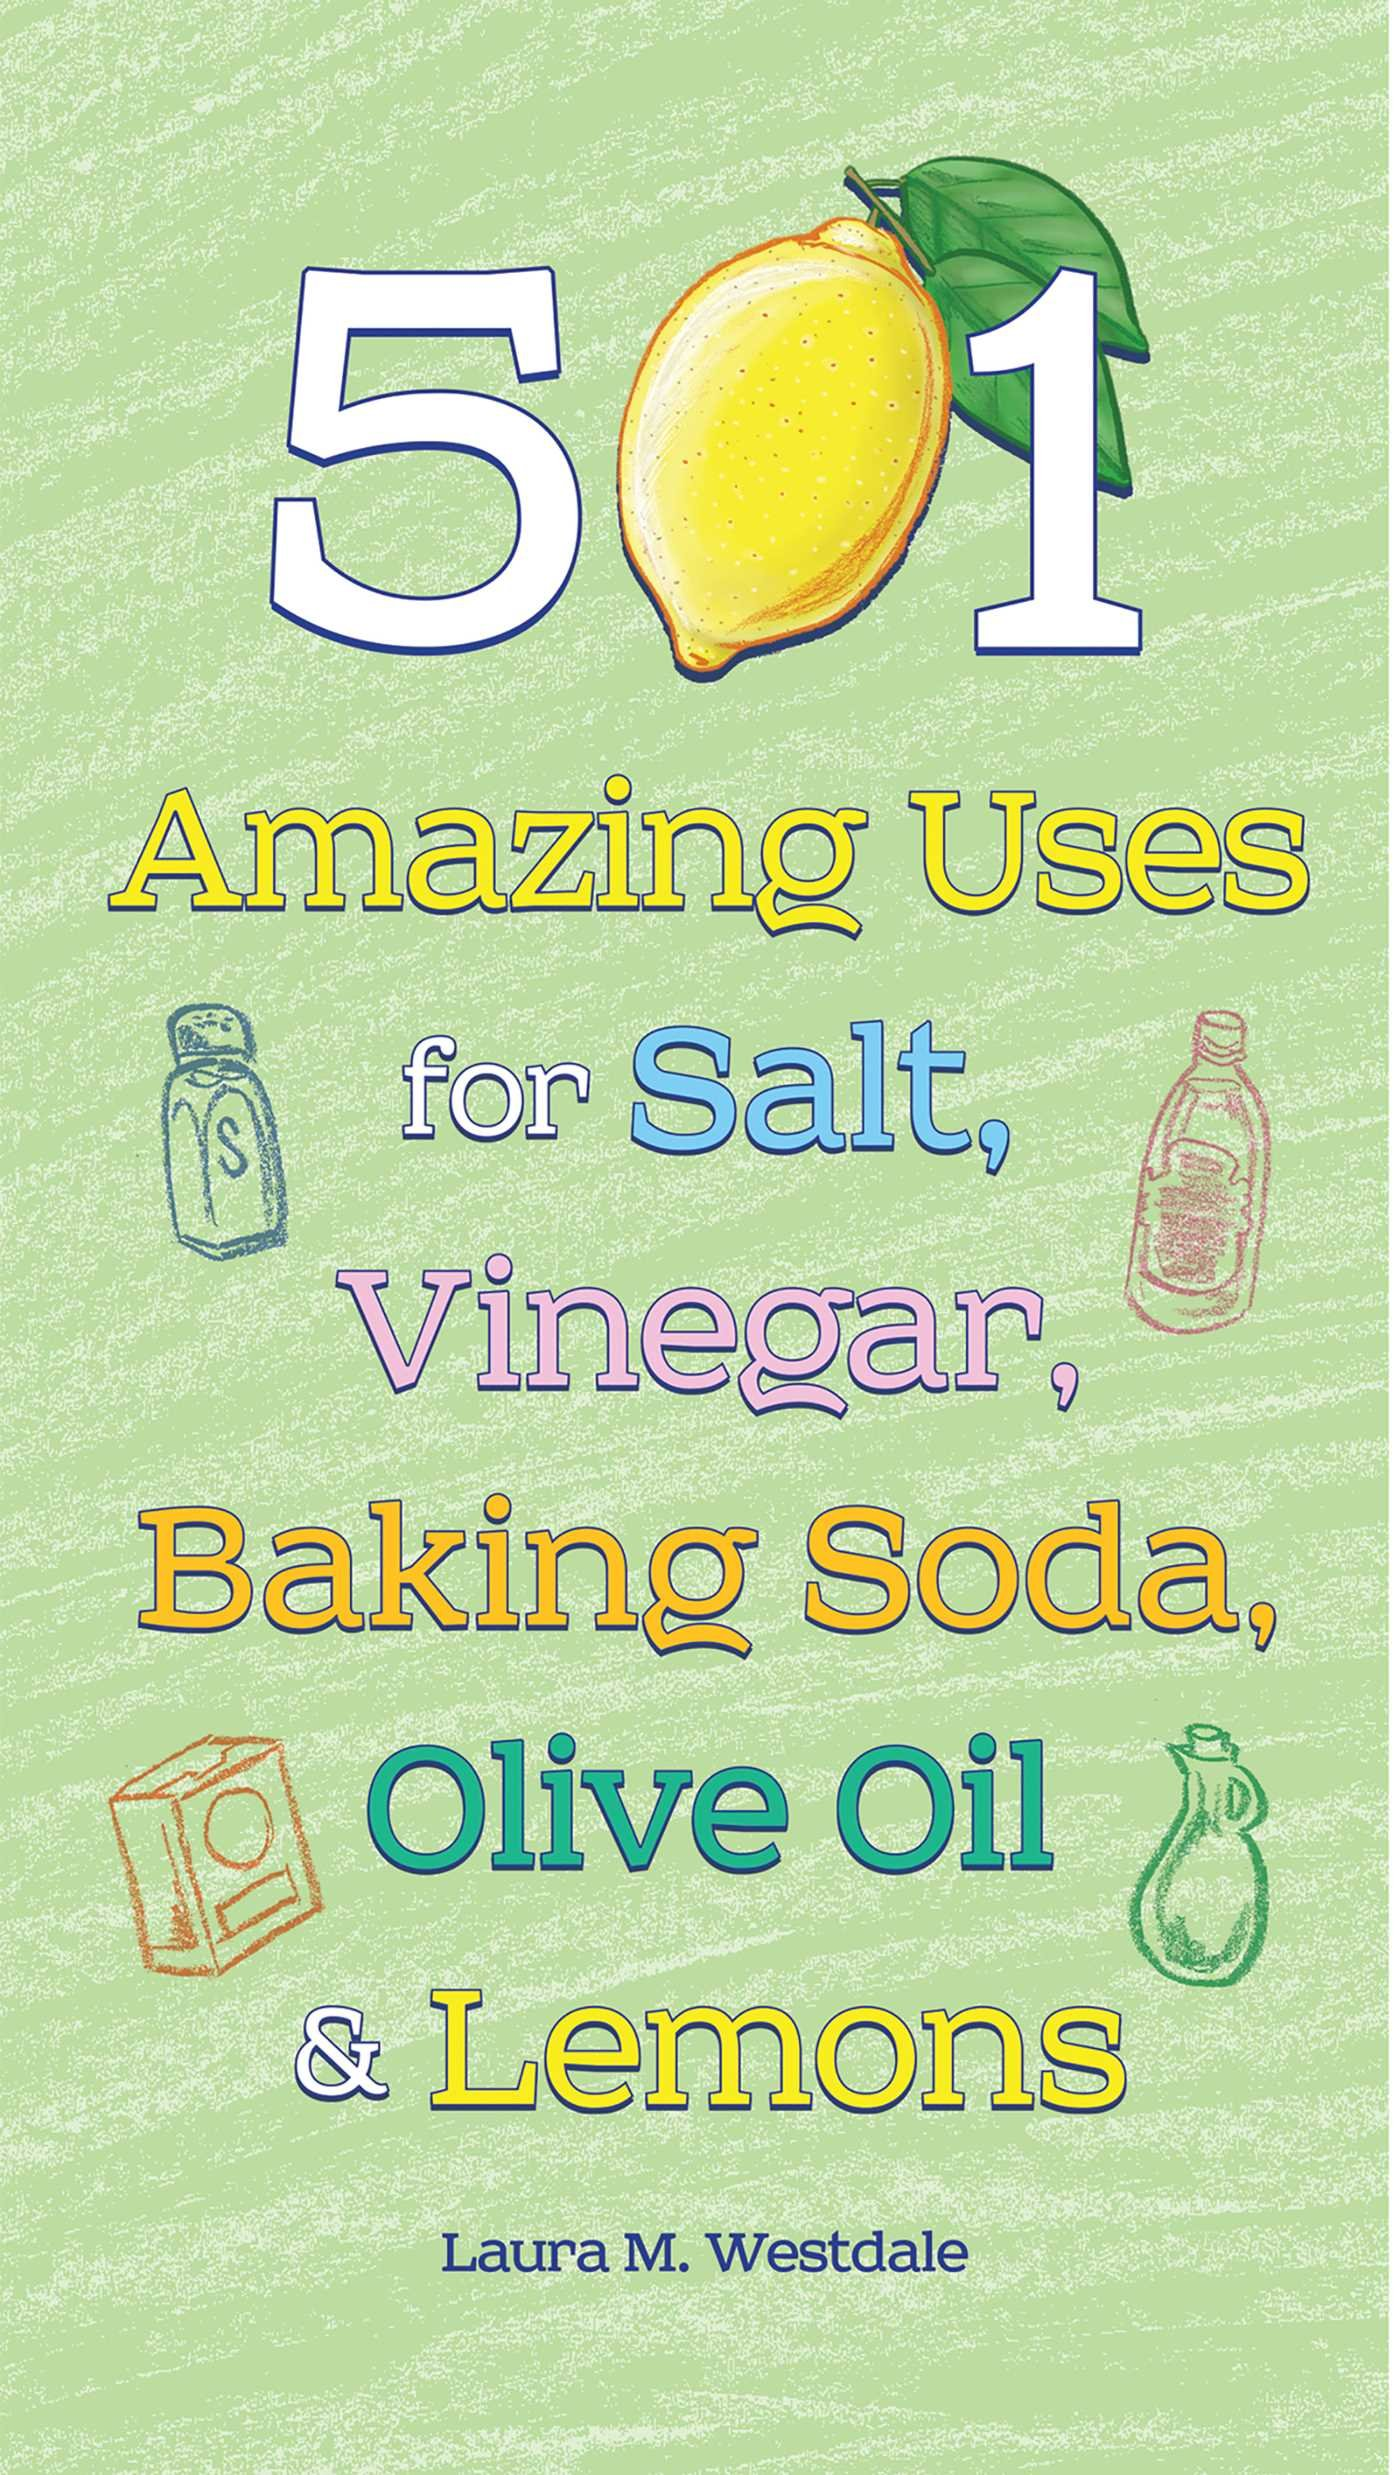 Read Online 501 Amazing Uses for Salt, Vinegar, Baking Soda, Olive Oil and Lemons pdf epub